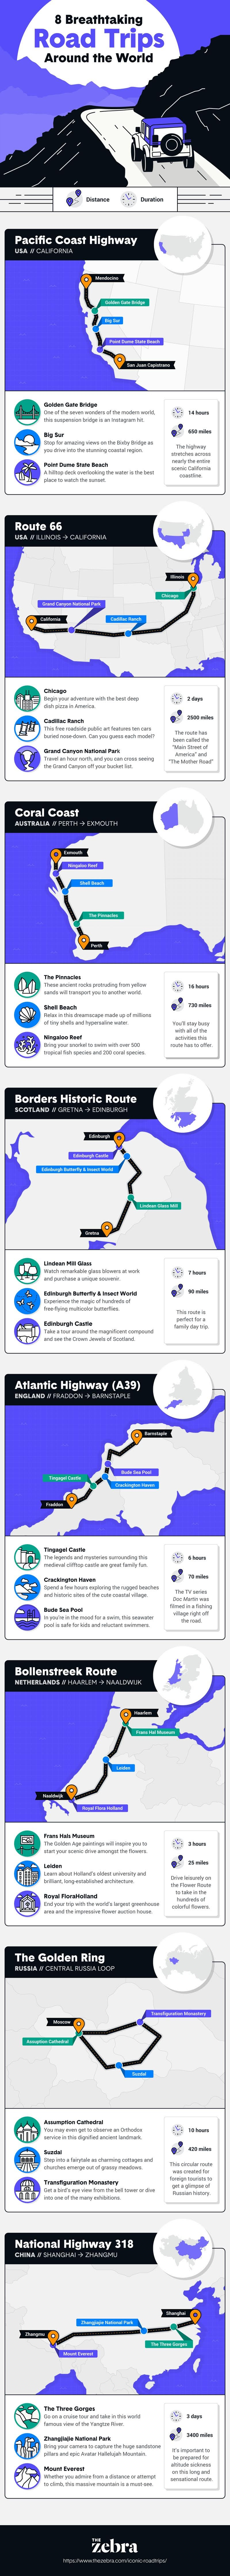 Amazing Road Trips Around the World to Help You Get Away #Infographic